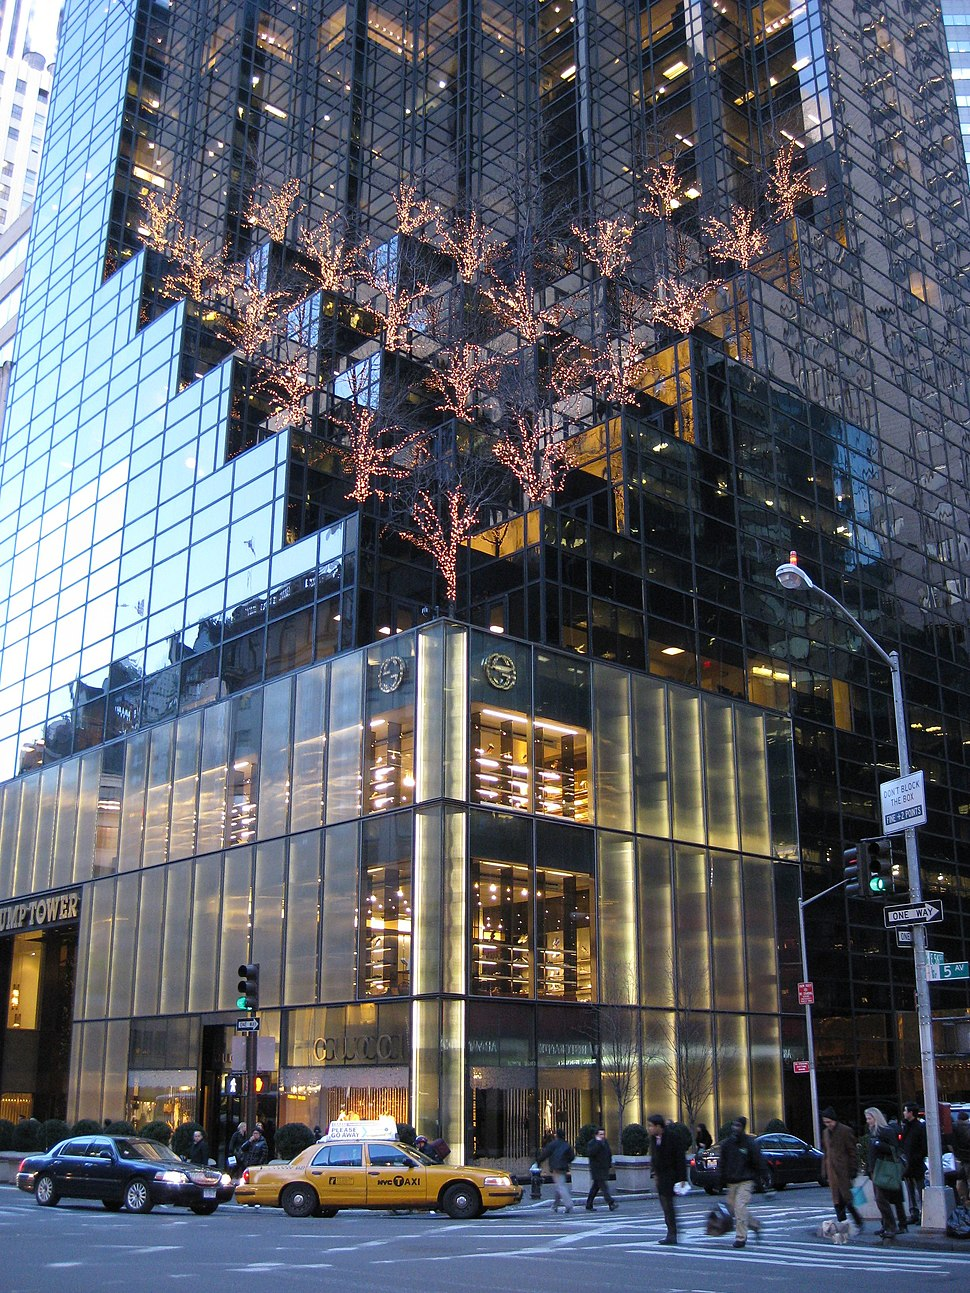 Trump Tower - lower part